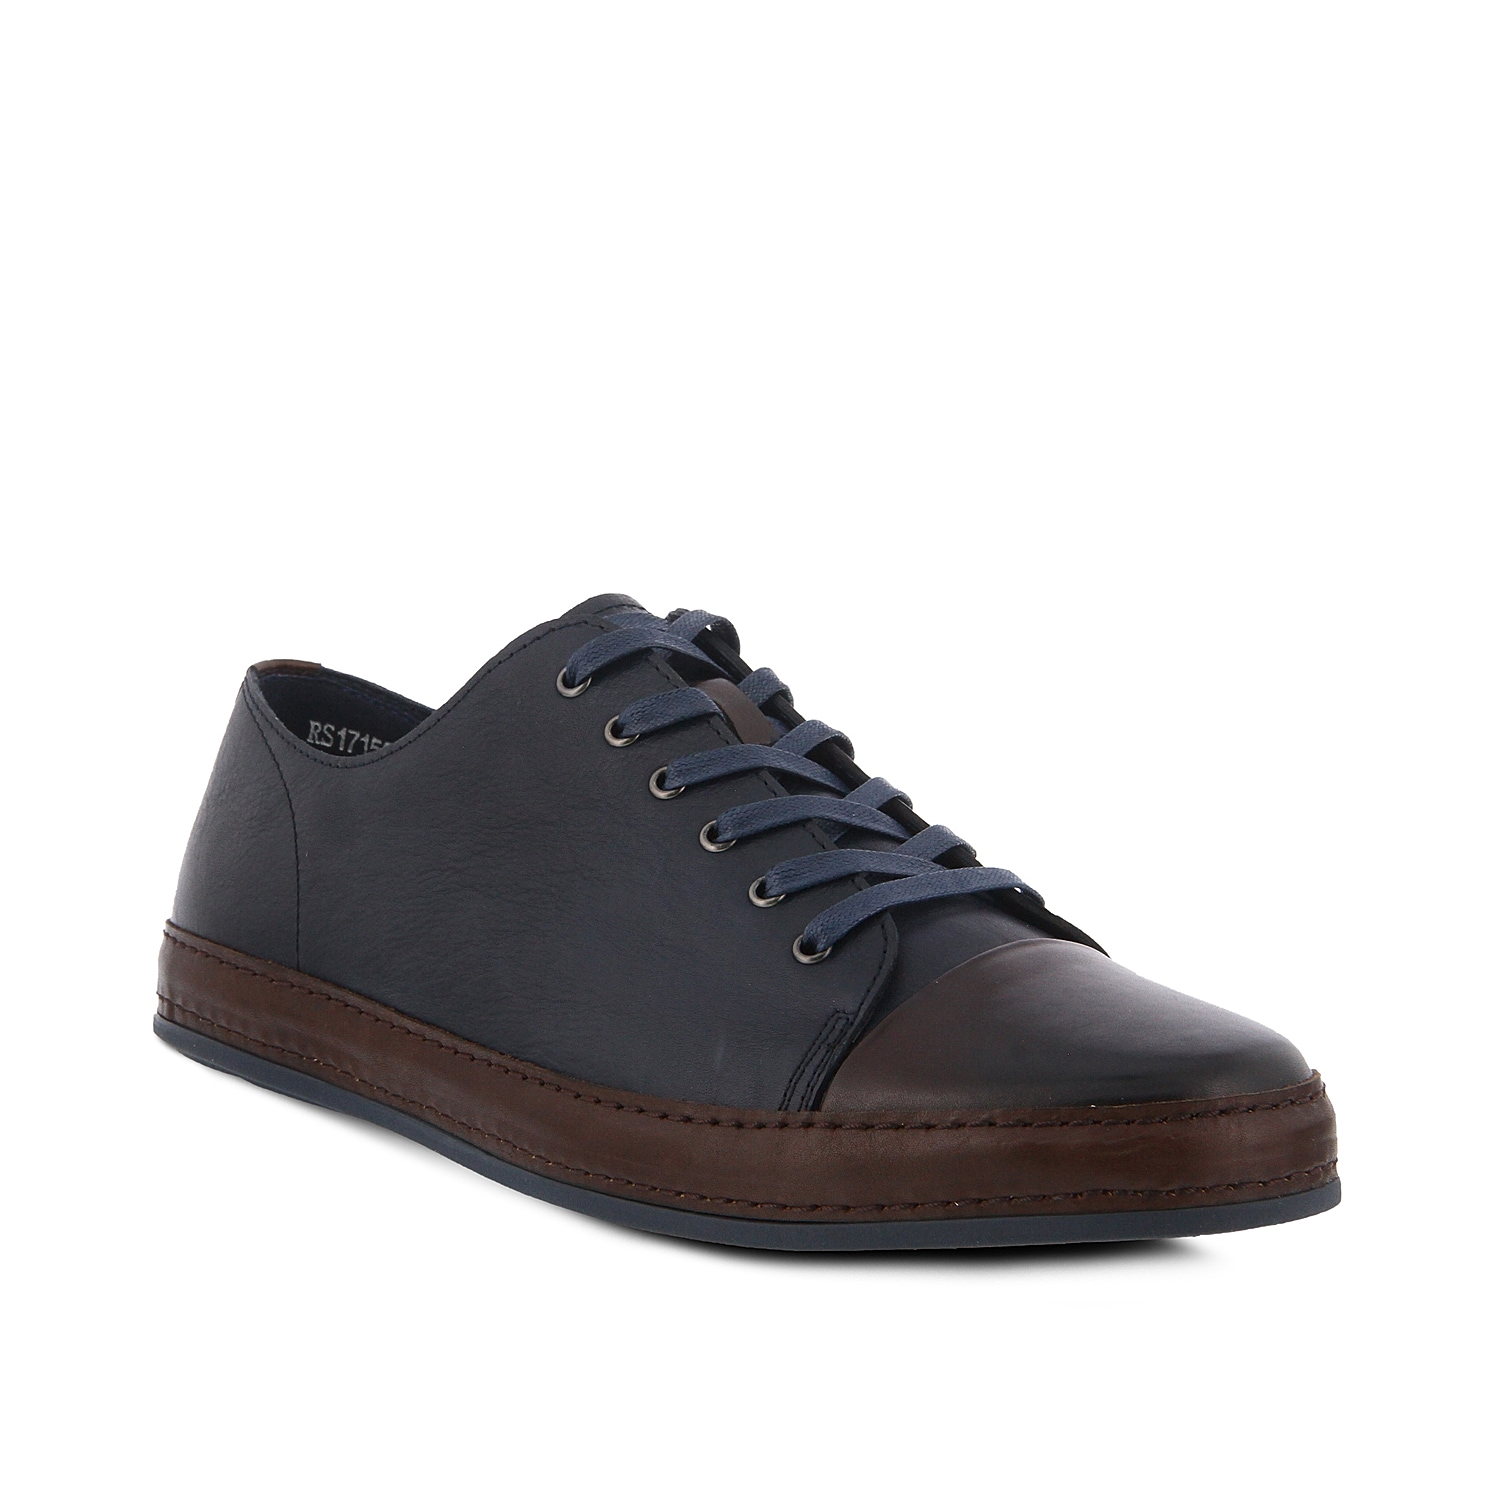 Update your casual look with a hint of sophistication with the Jimmy cap toe sneaker from Spring Step. This low-top features handsome colorblock styling and a leather wrapped midsole for a modern update on a classic style.